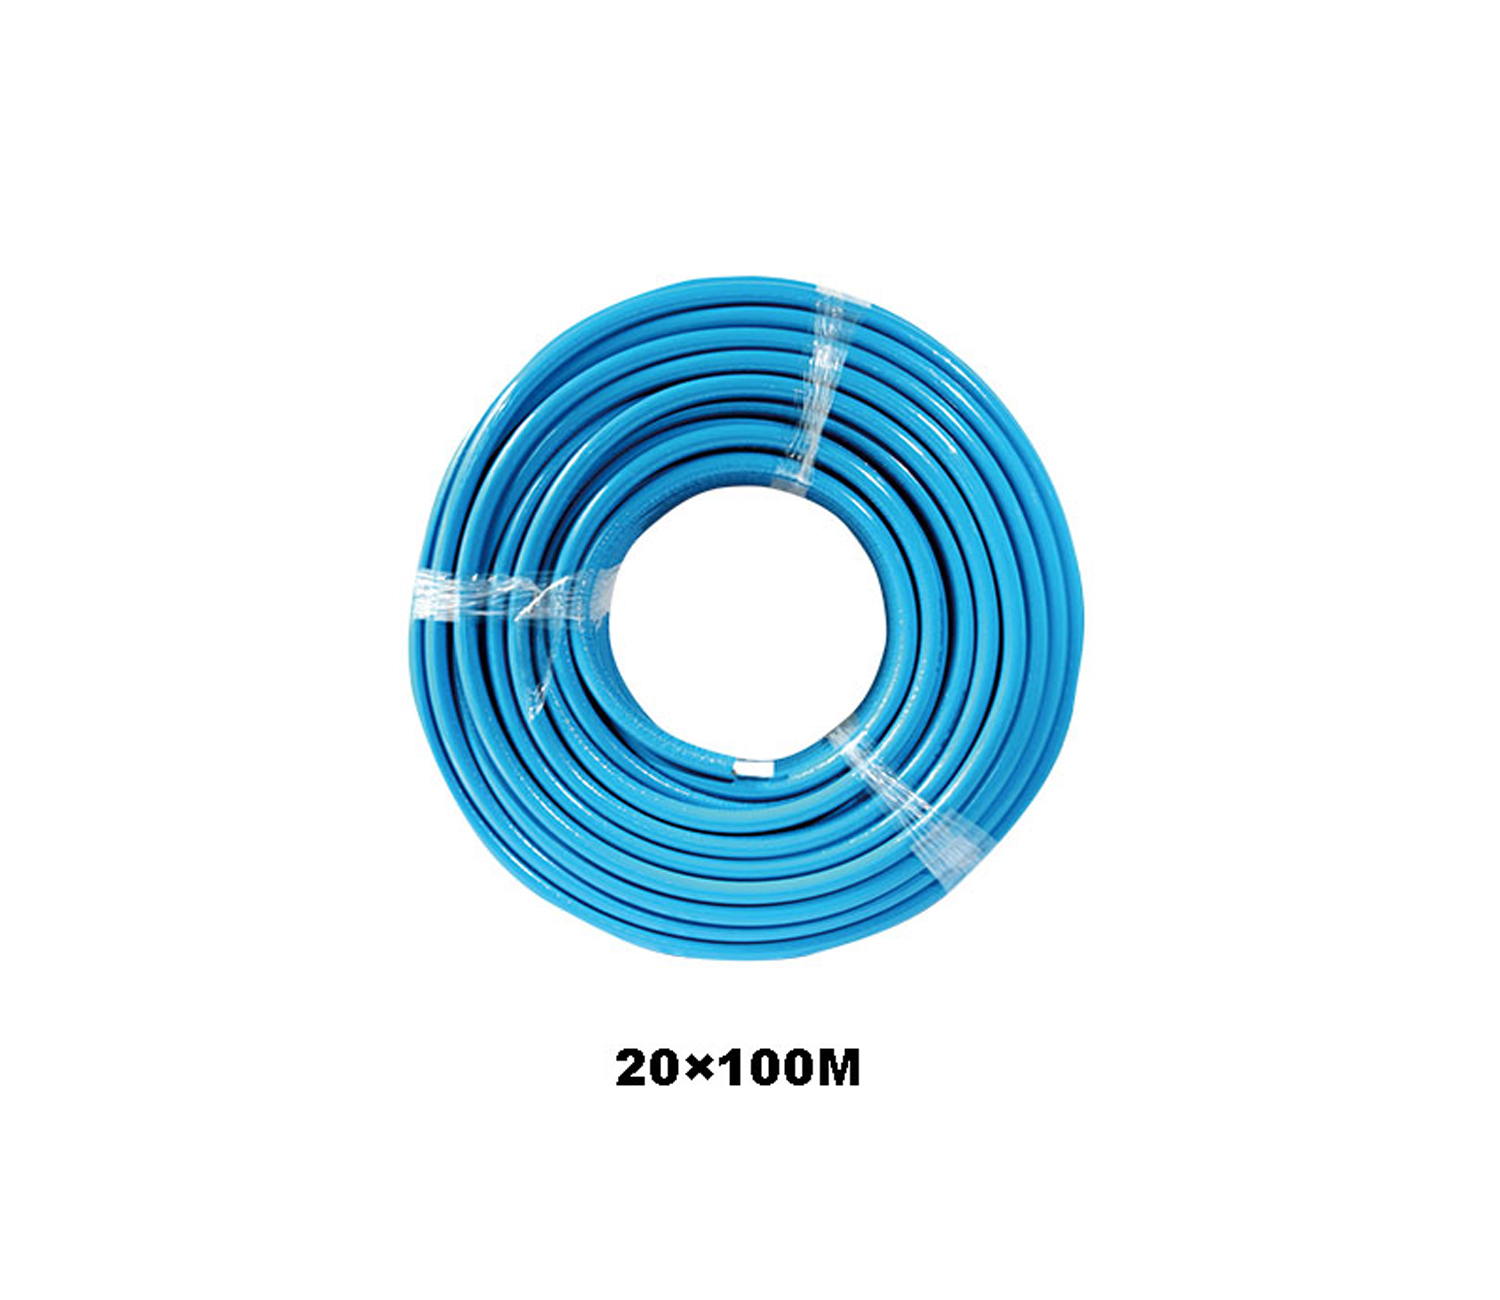 PEX-AL-PEX Insulated Multilayer Pipe 20×100M (Blue)